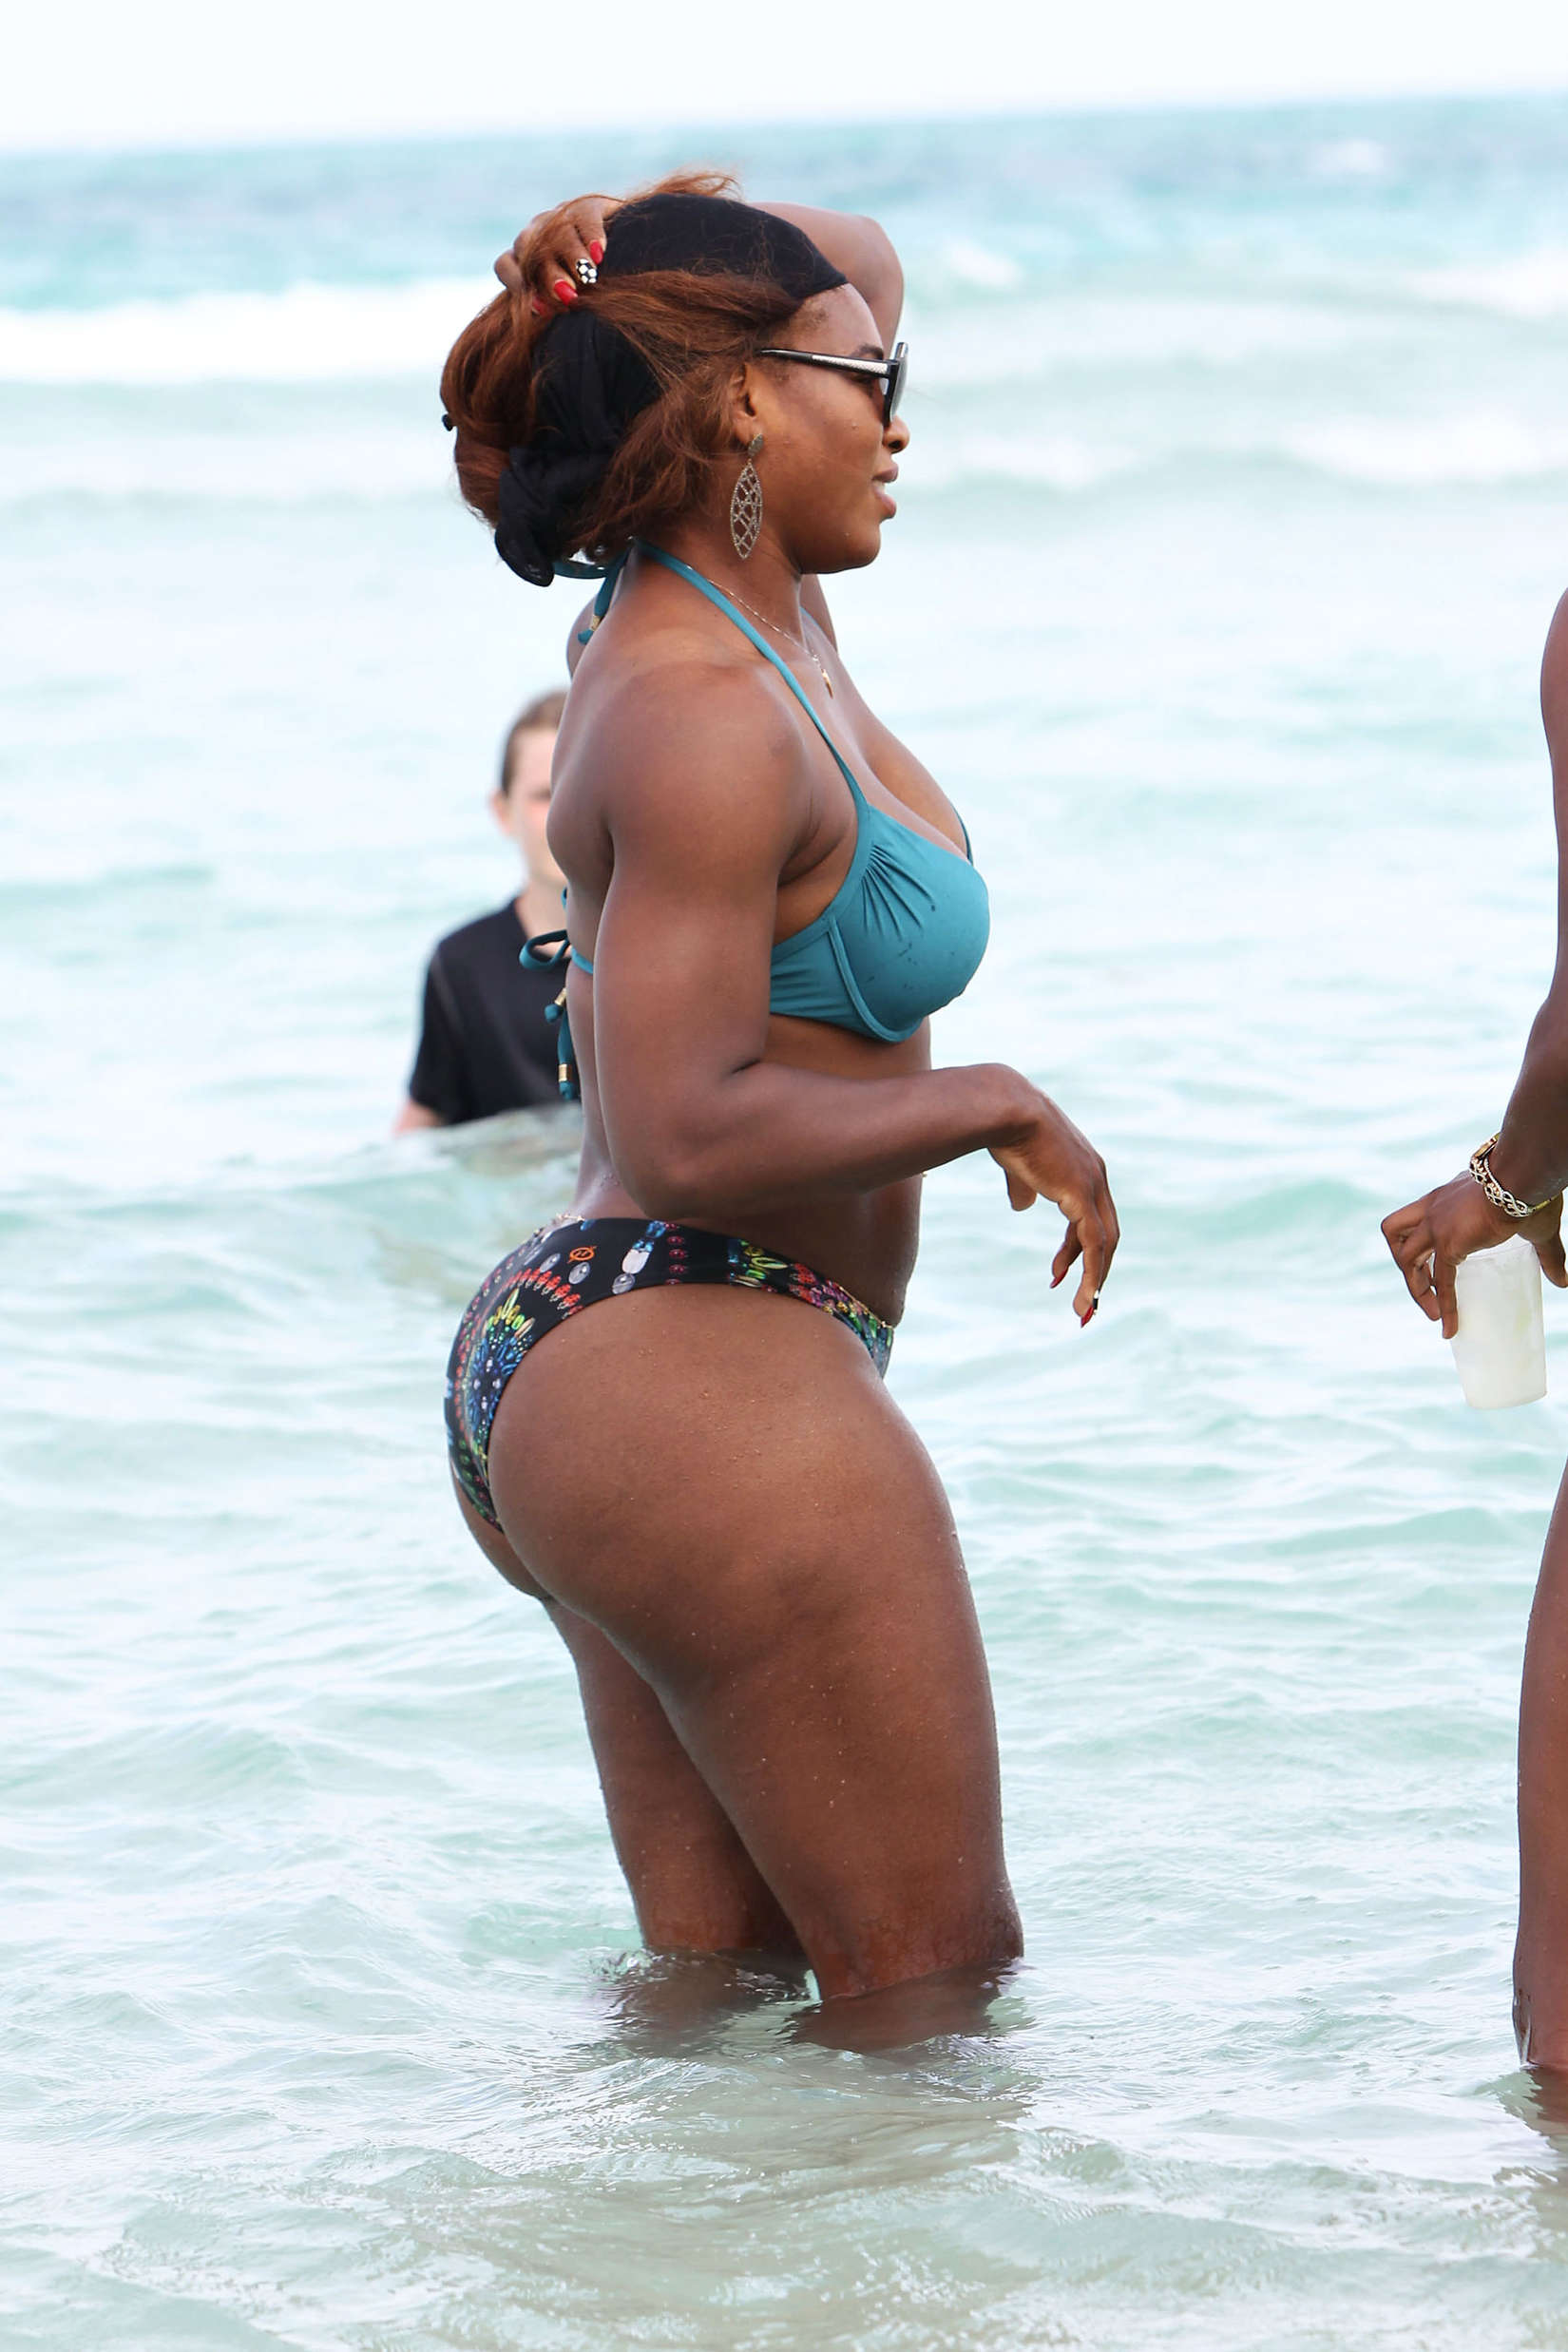 Serena Williams Shows Off Her Incredible Beach Body In A Bikini As She Holidays With Pals